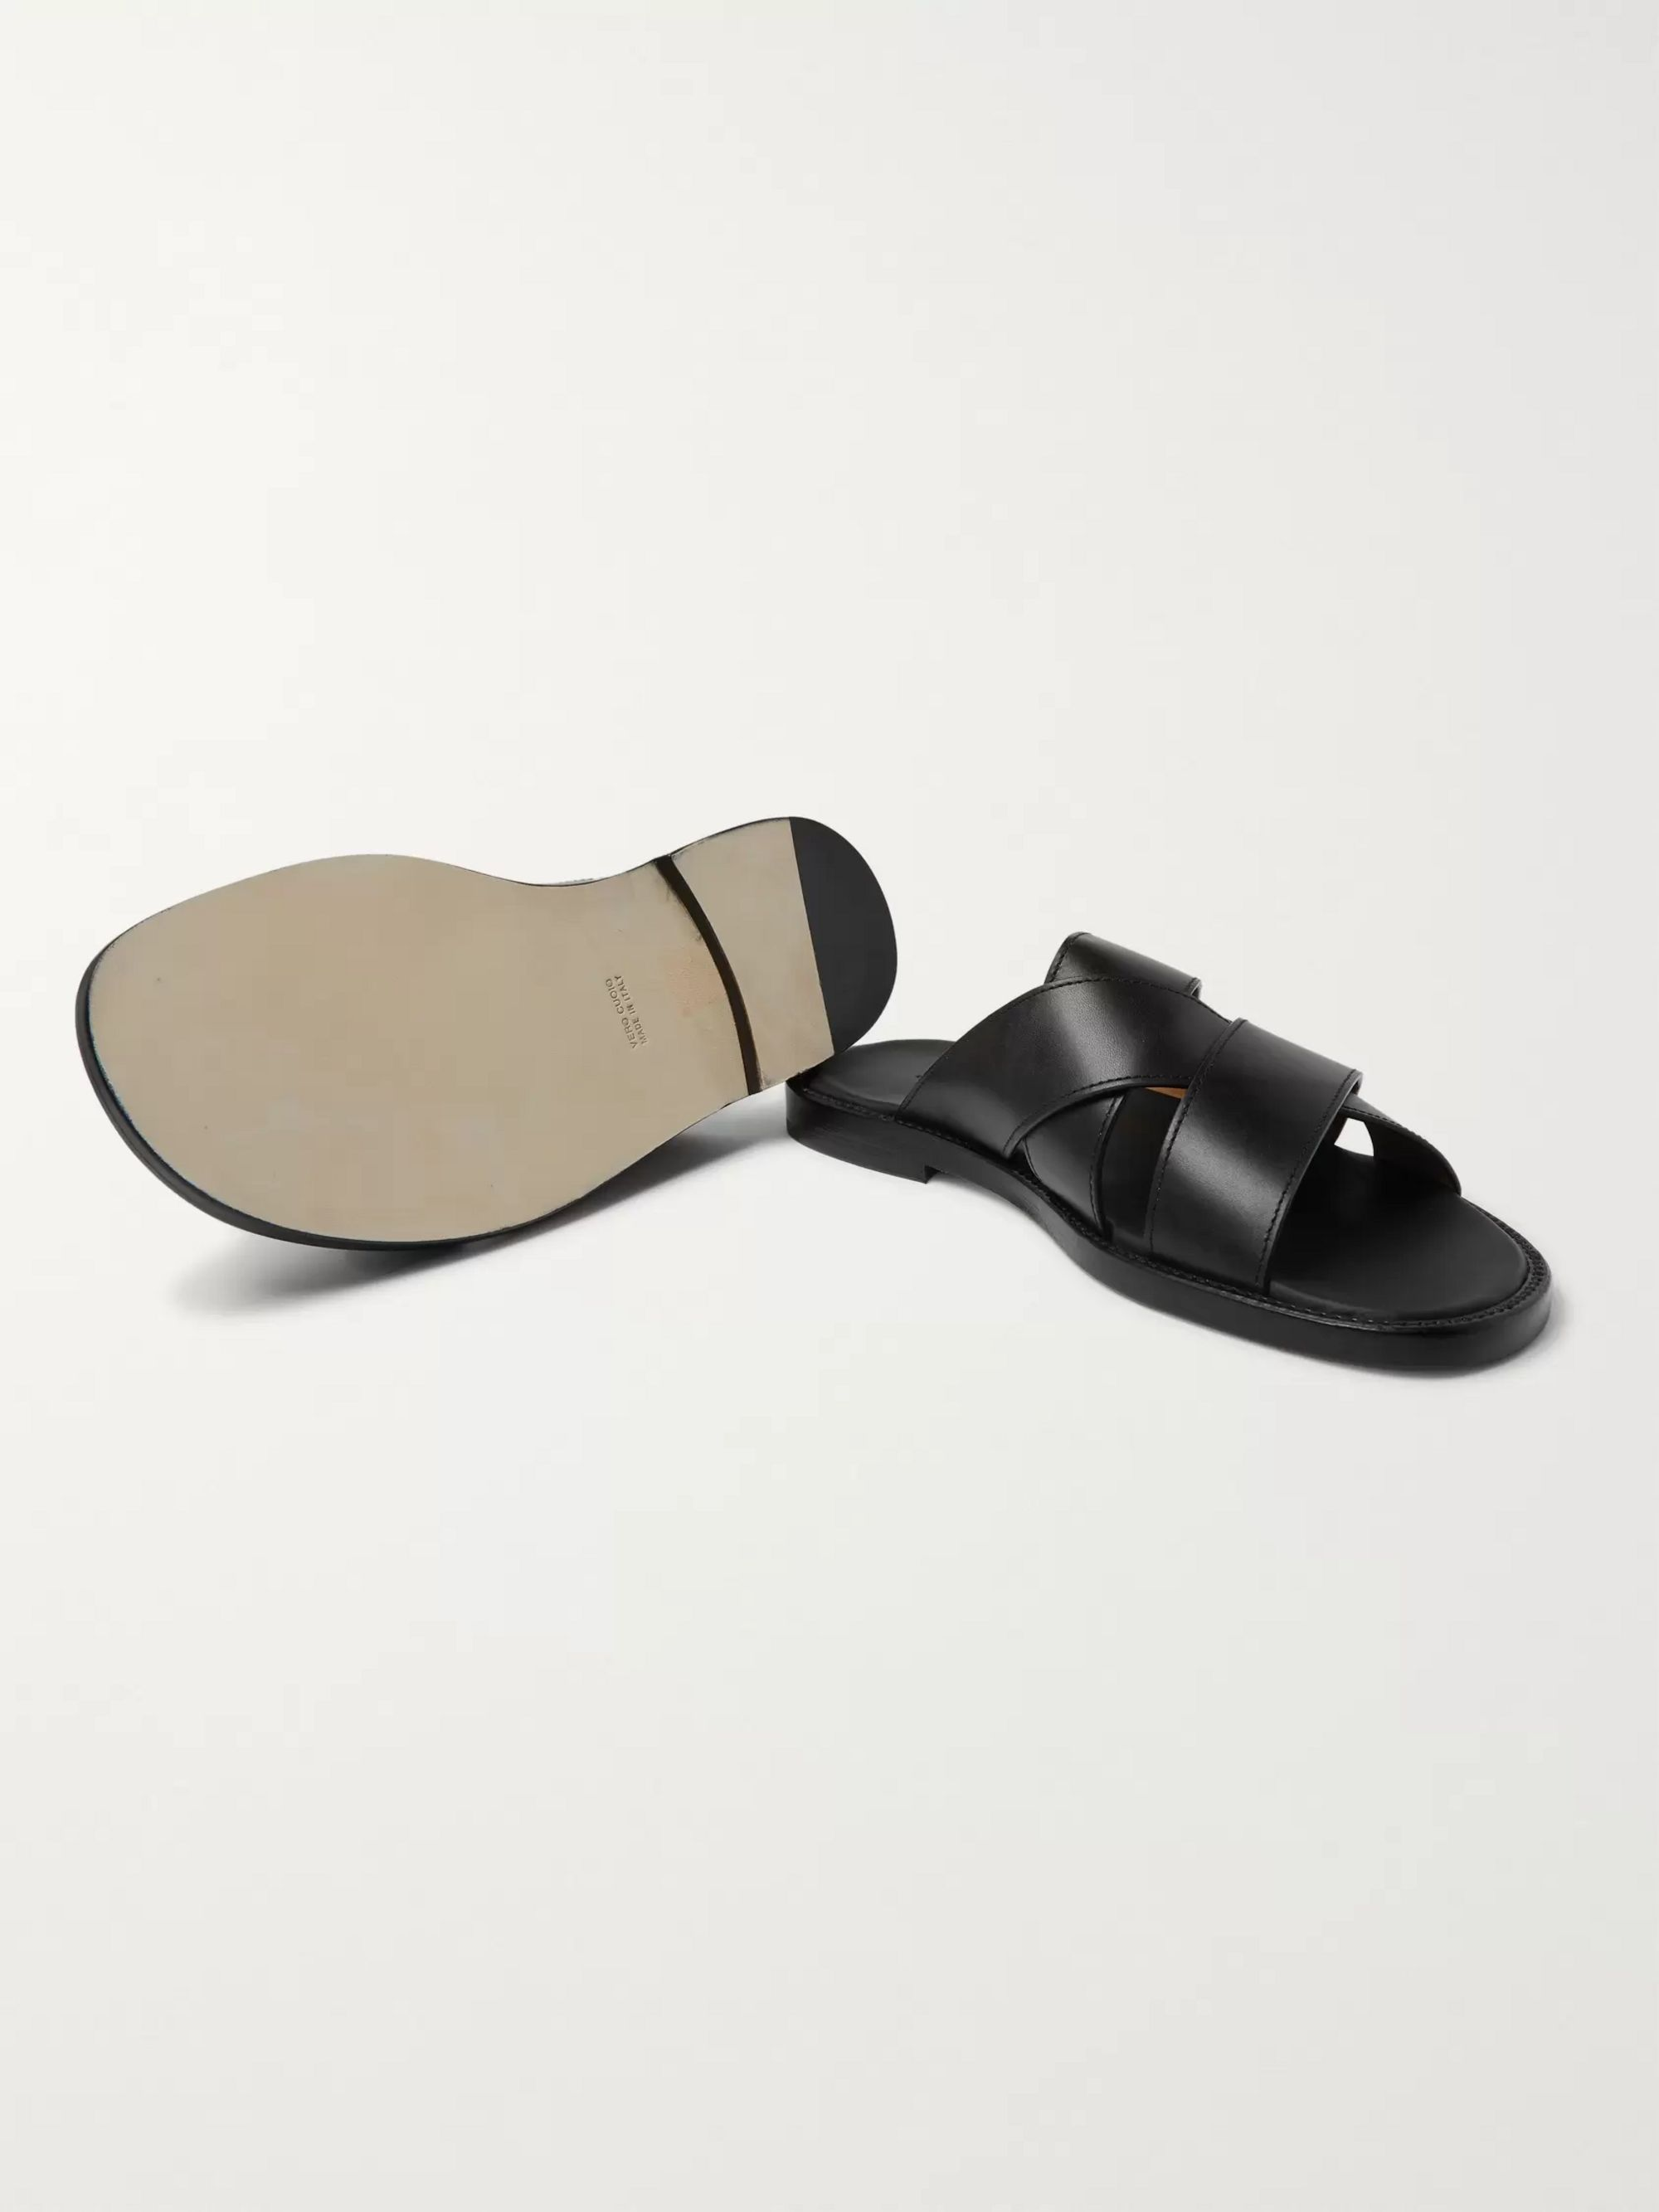 John Lobb Cross Leather Sandals